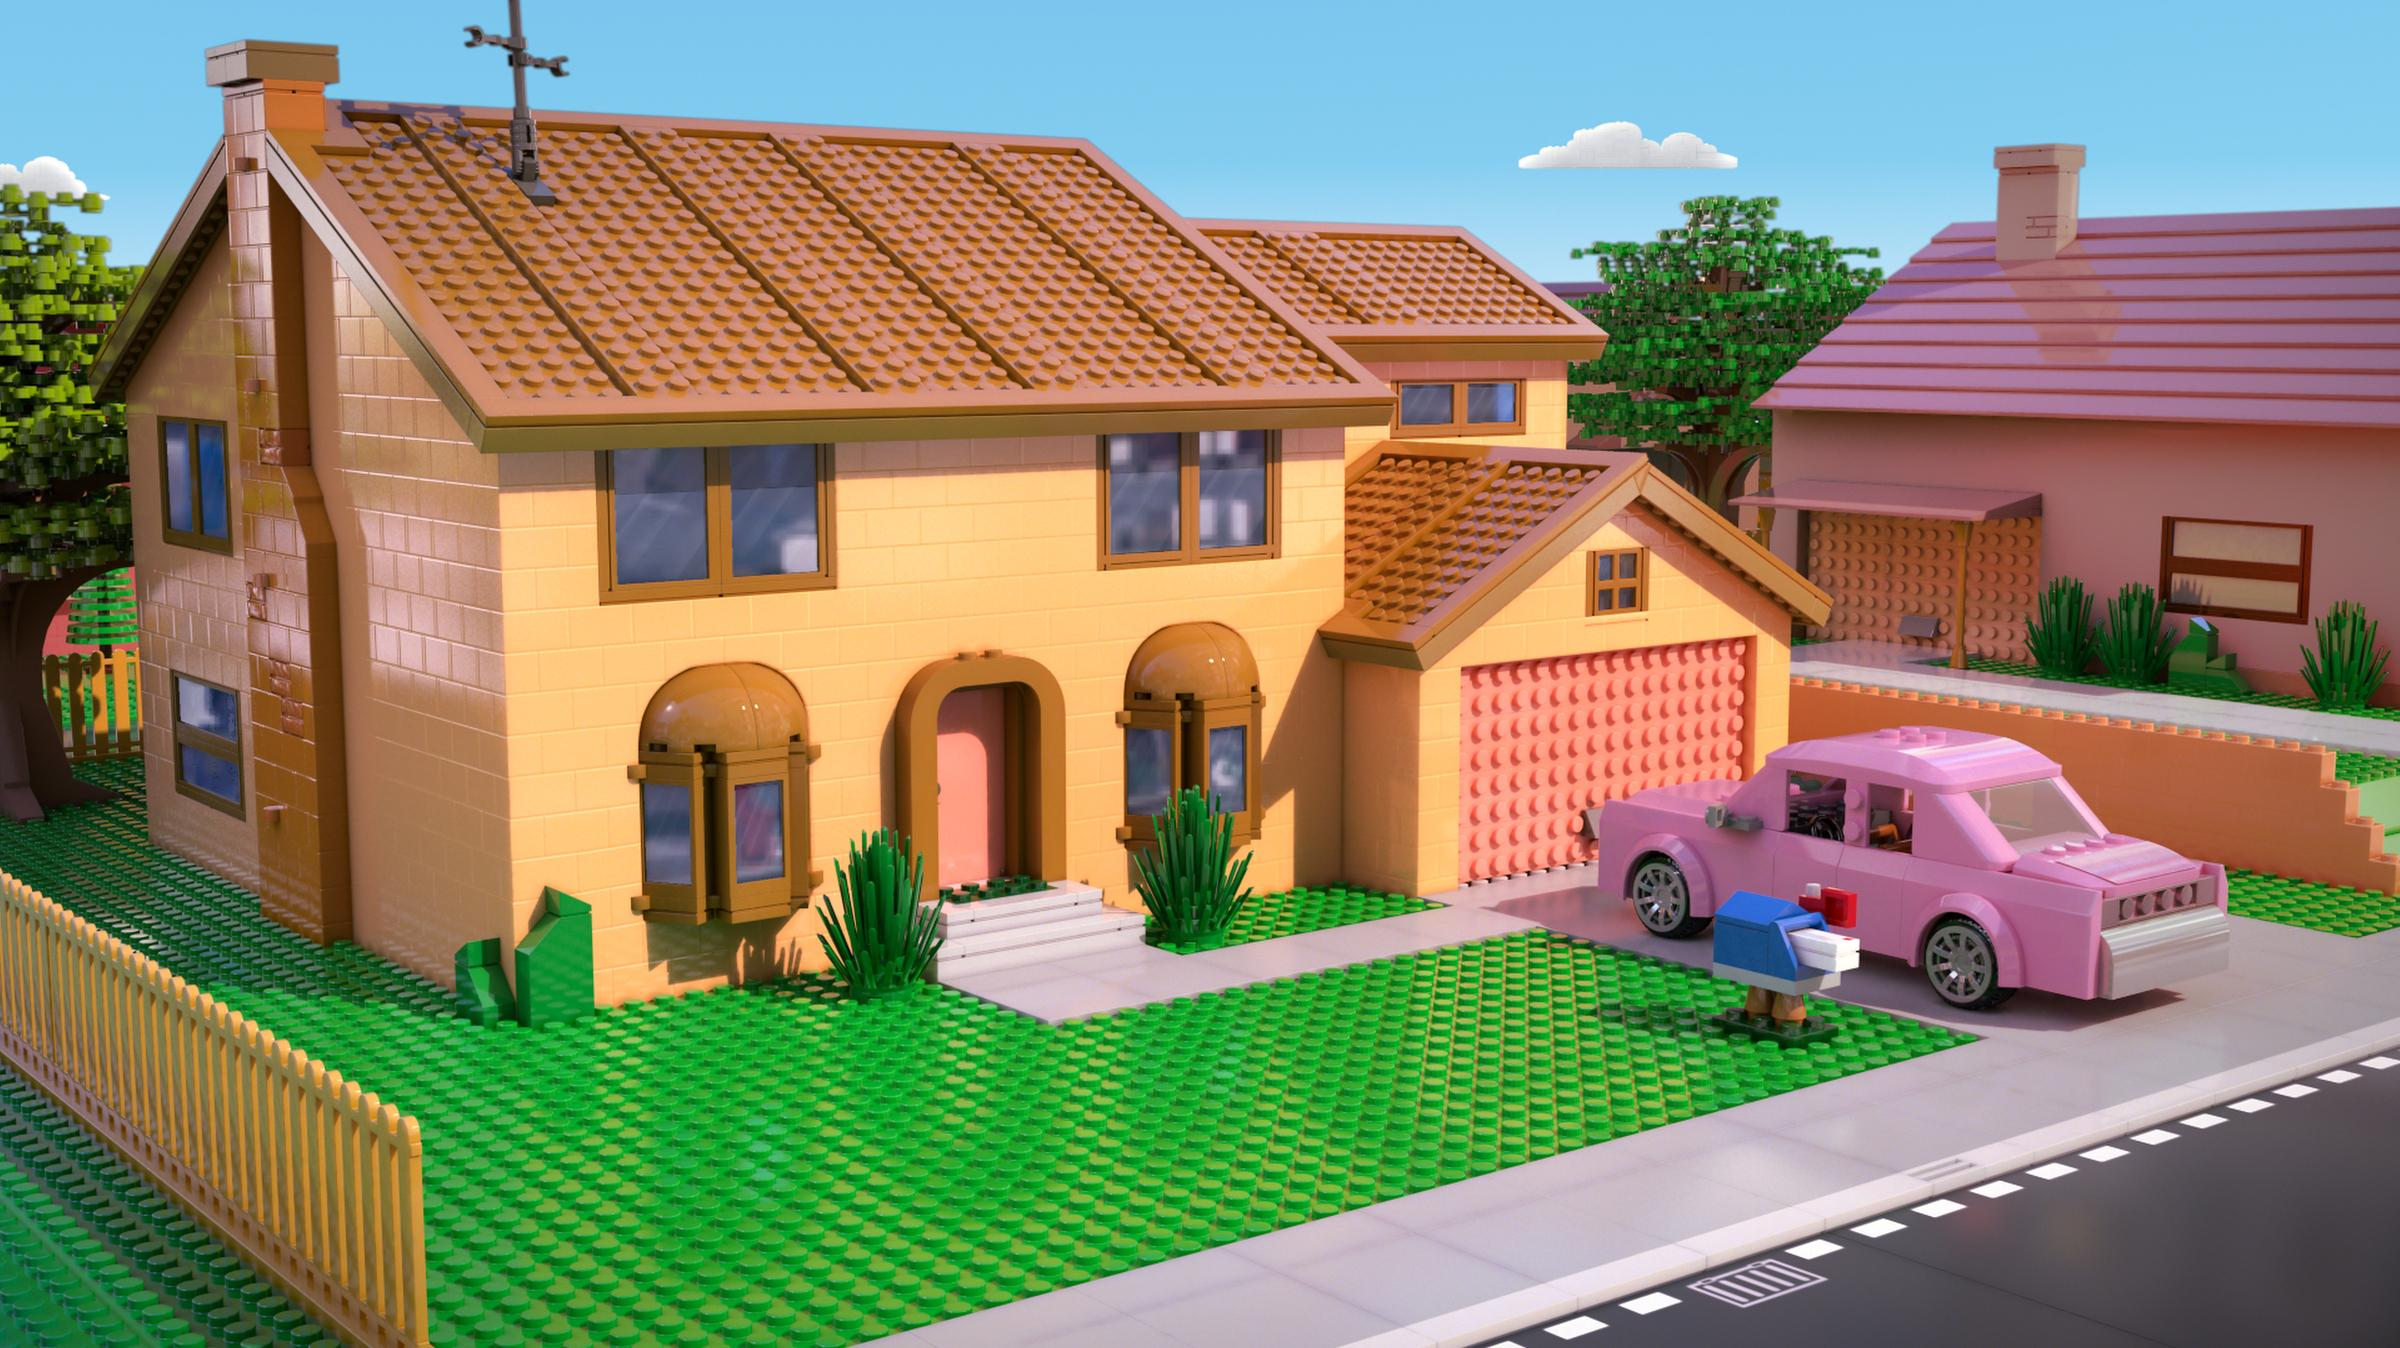 Lego Full House What Do The Simpsons Look Like In Lego Wnpr News